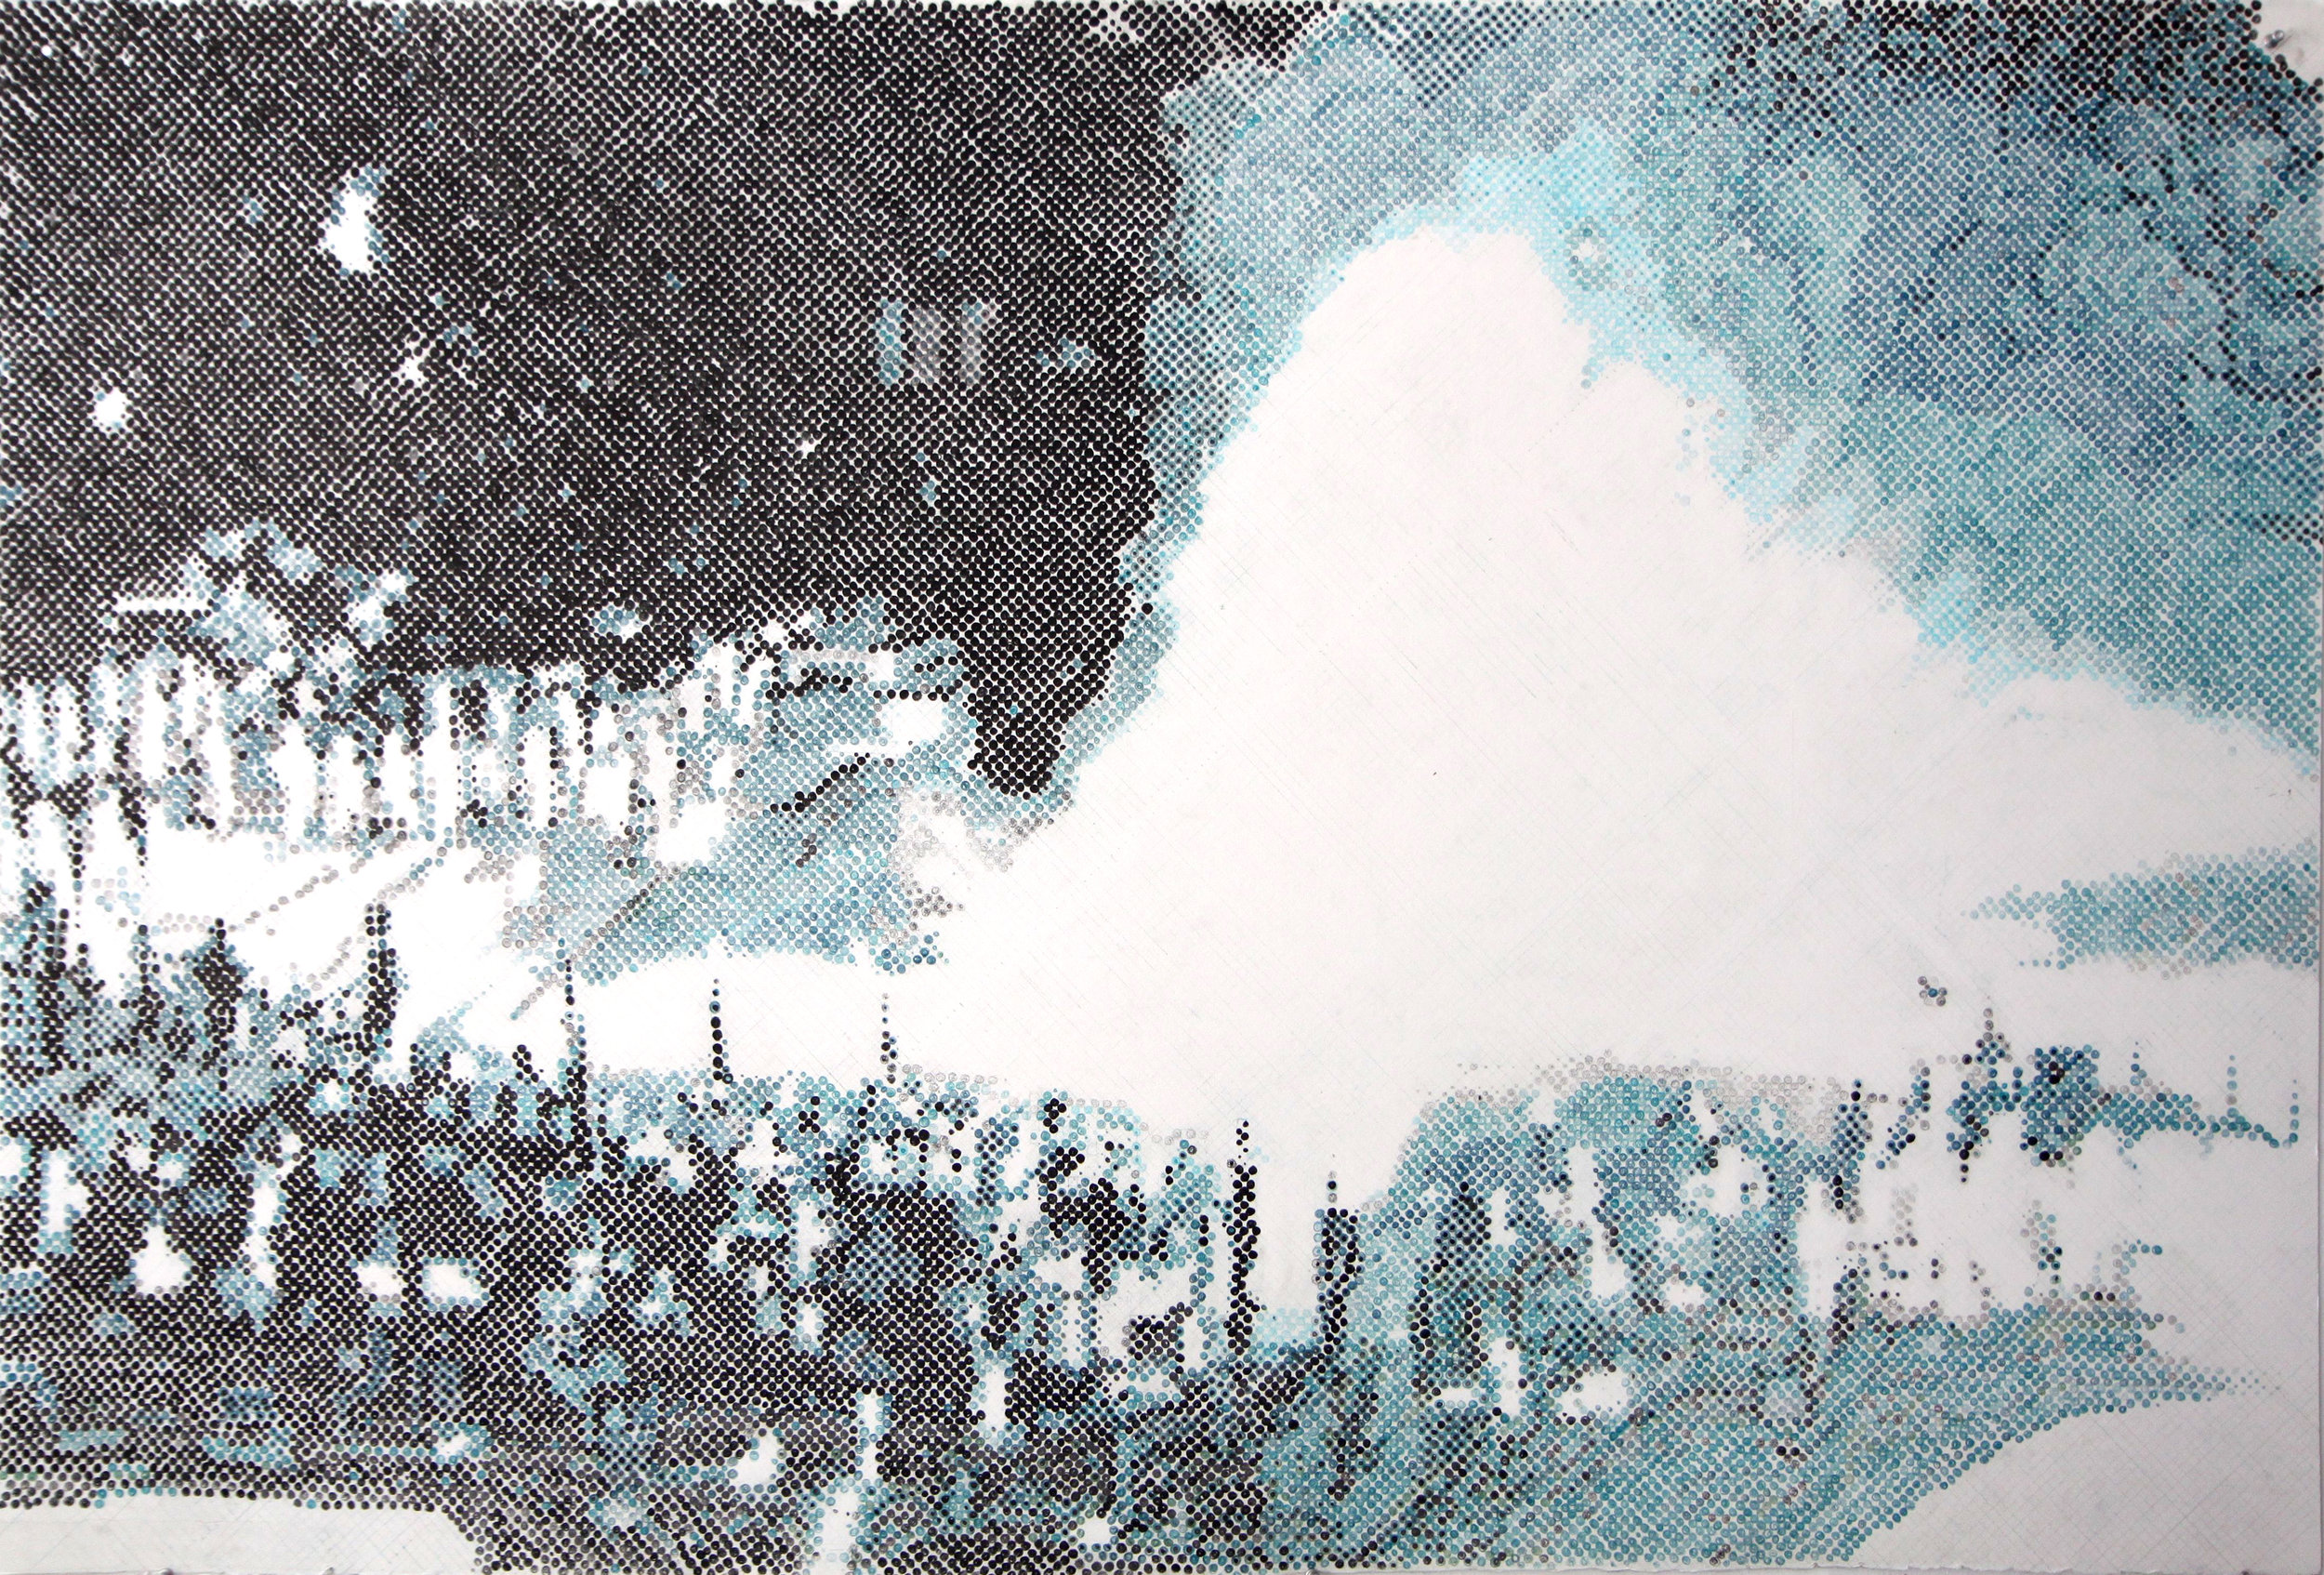 Bebelplatz III, 2010, Colored pencil on paper, 40.4 x 60.5 inches